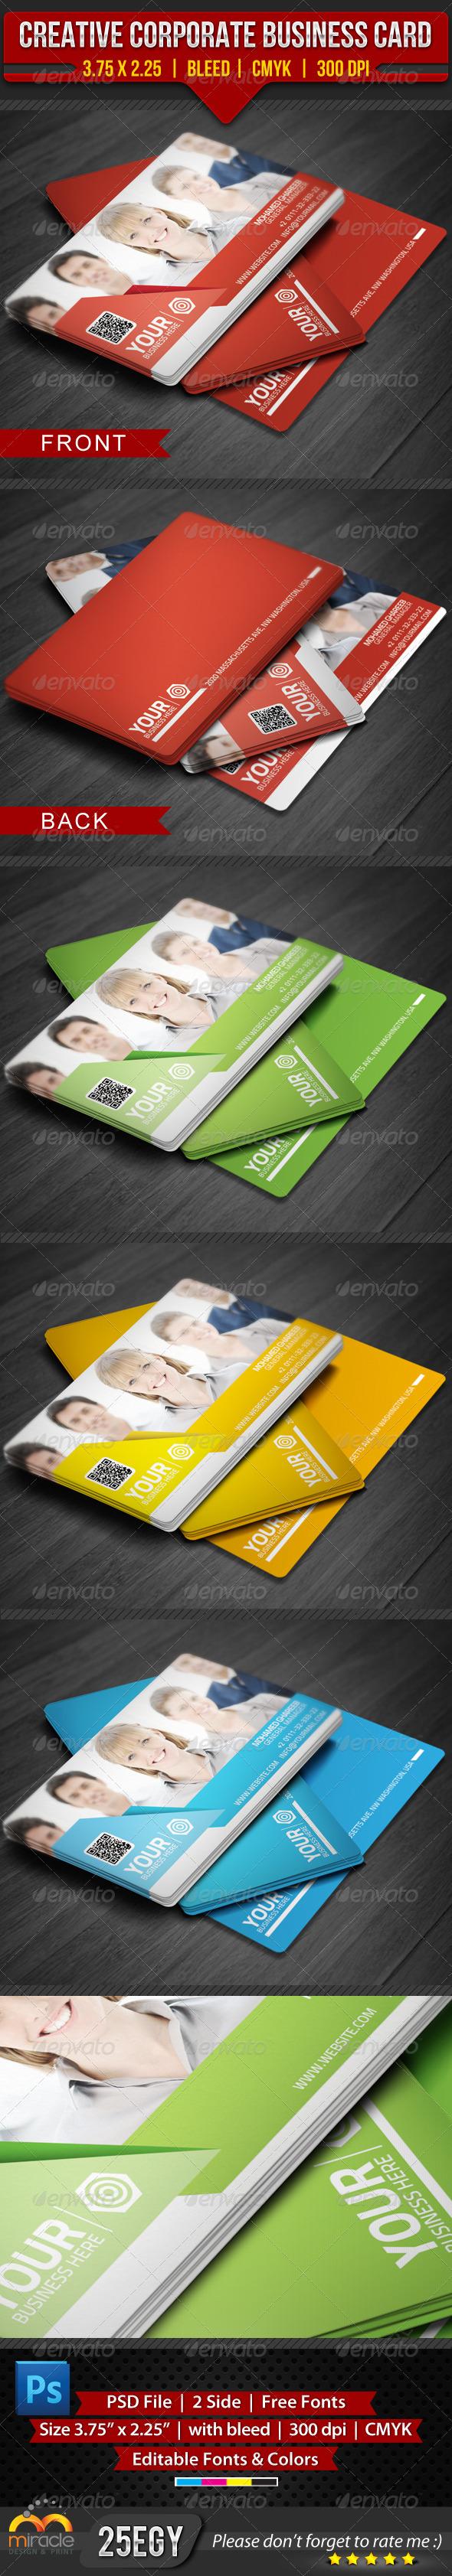 GraphicRiver Creative Corporate Business Card 4575450